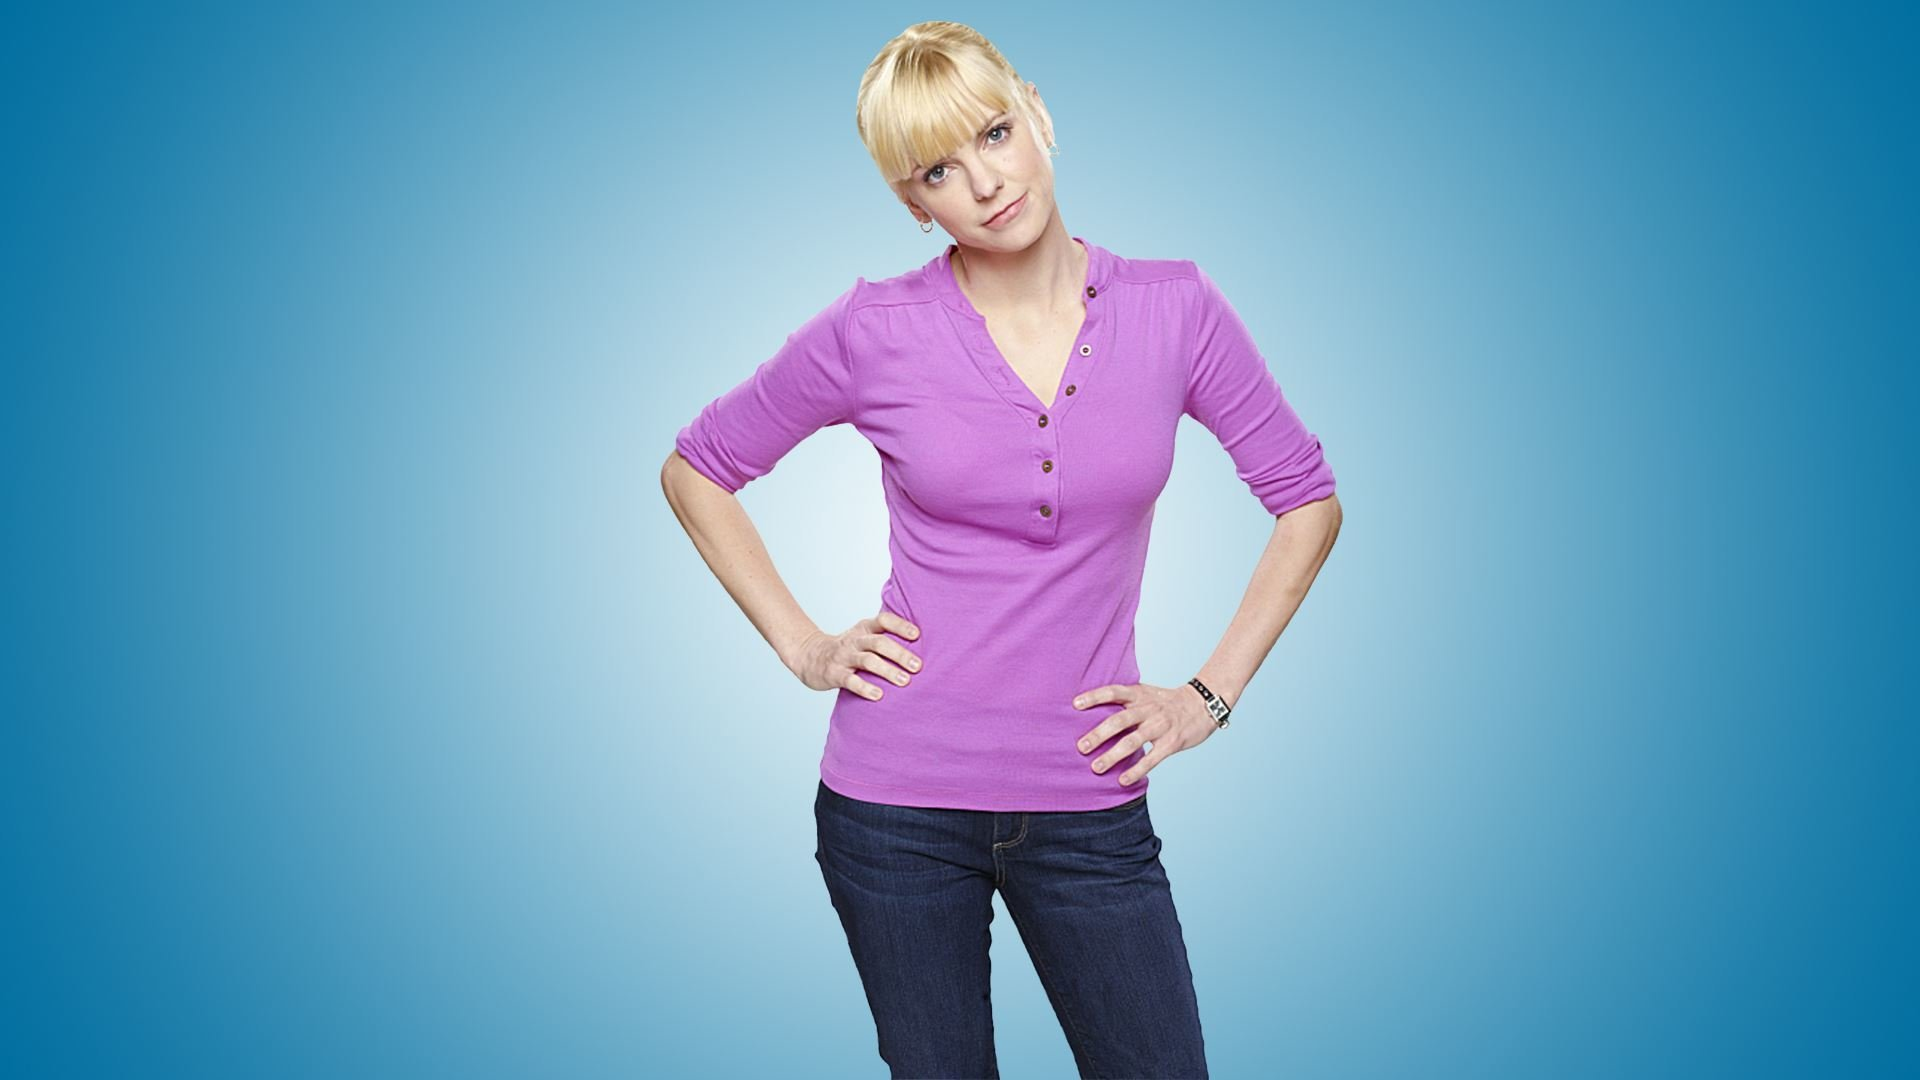 Anna Faris Wallpapers Images Photos Pictures Backgrounds